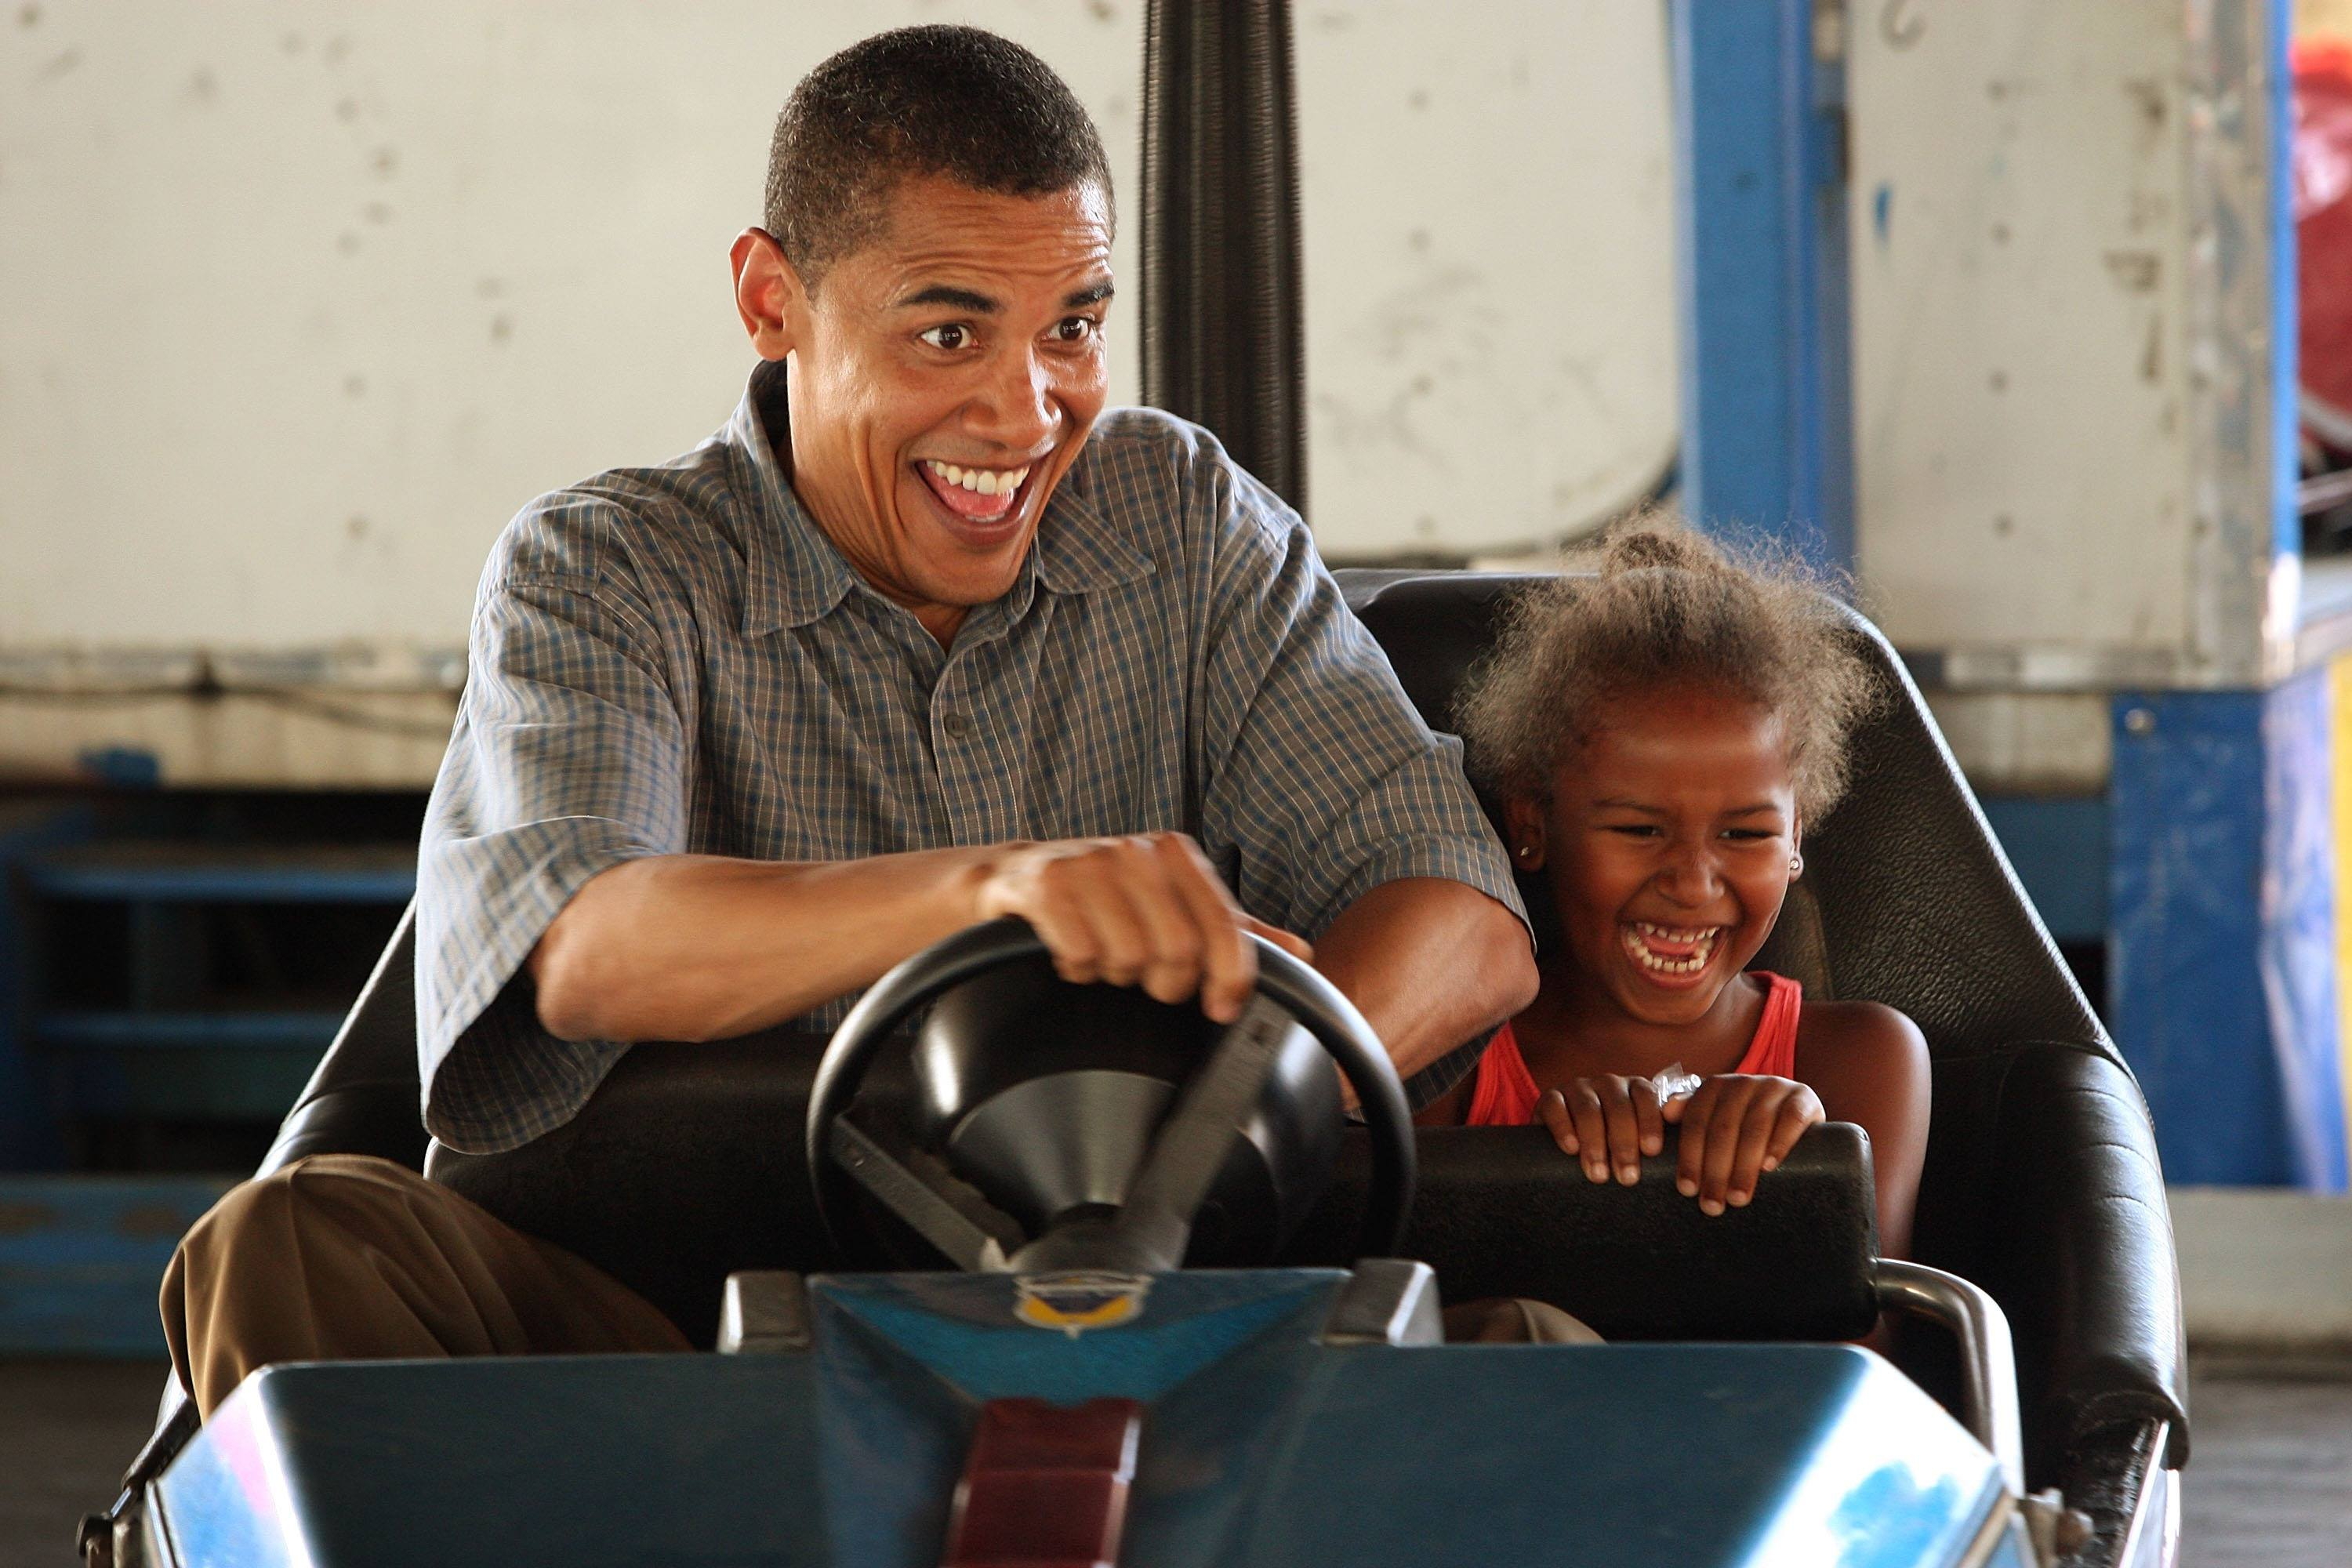 obama and sasha in a bumper car